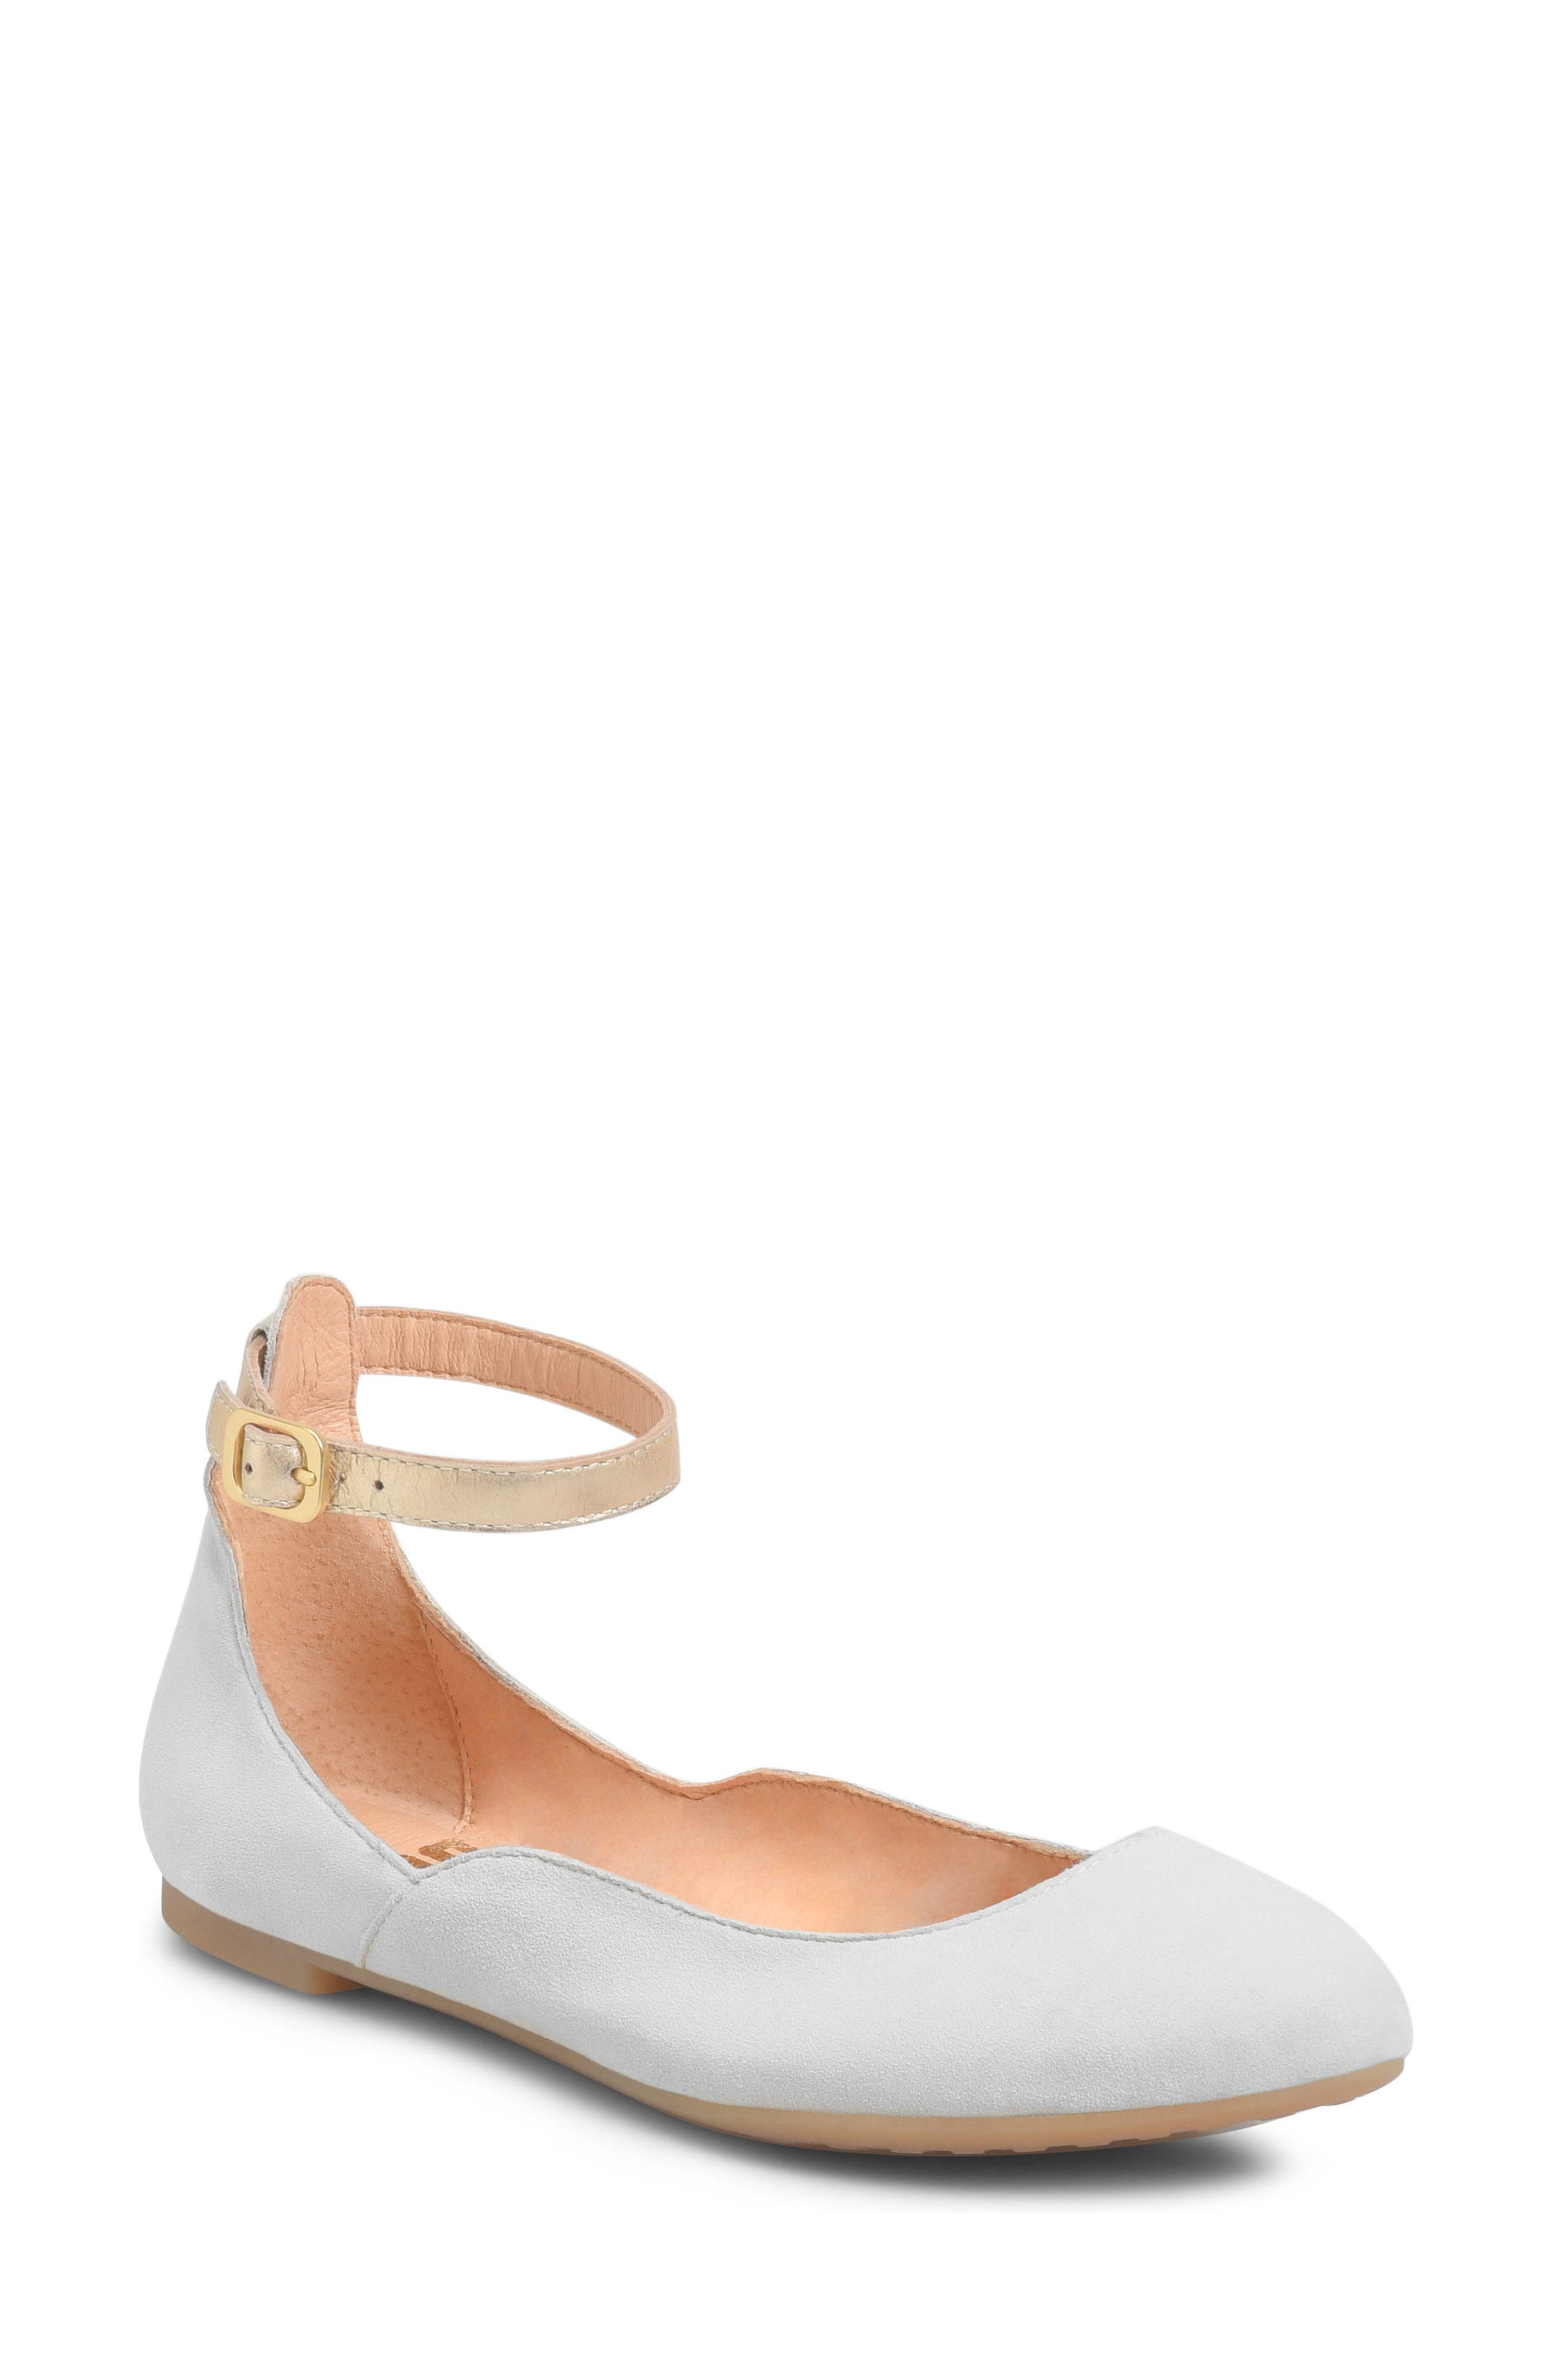 Luchia Ankle Strap Flat,                             Main thumbnail 1, color,                             Light Grey/ Gold Leather